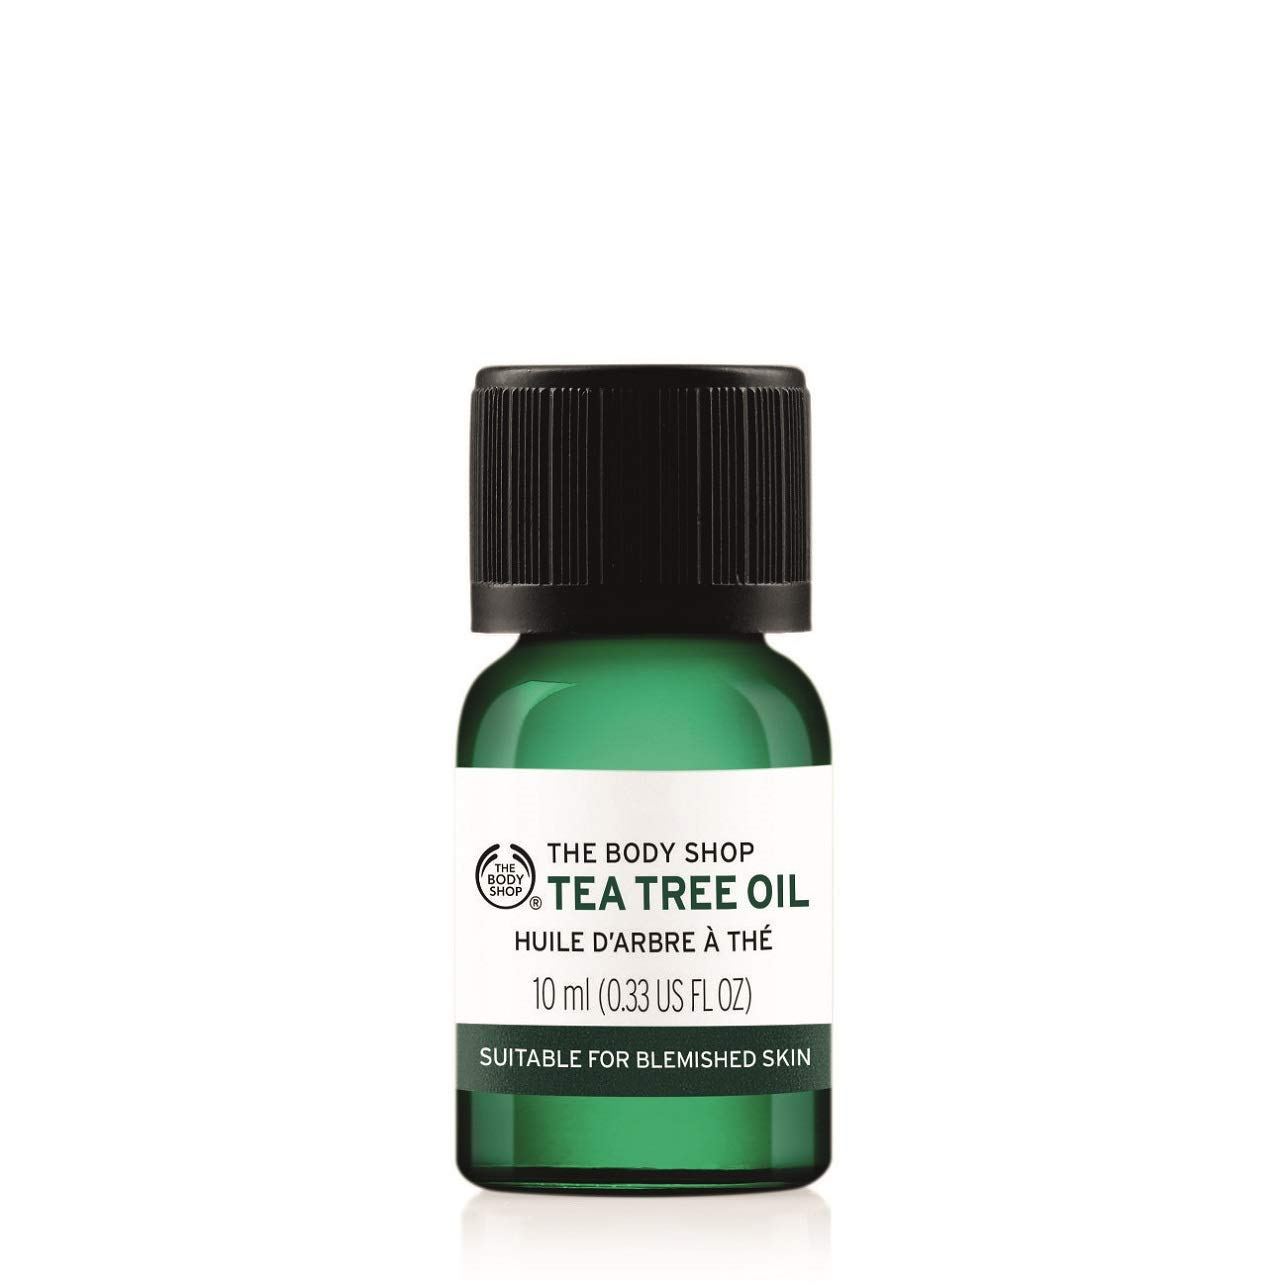 The Body Shop Tea Tree Oil, 0.33 Fl Oz (Vegan) : Beauty